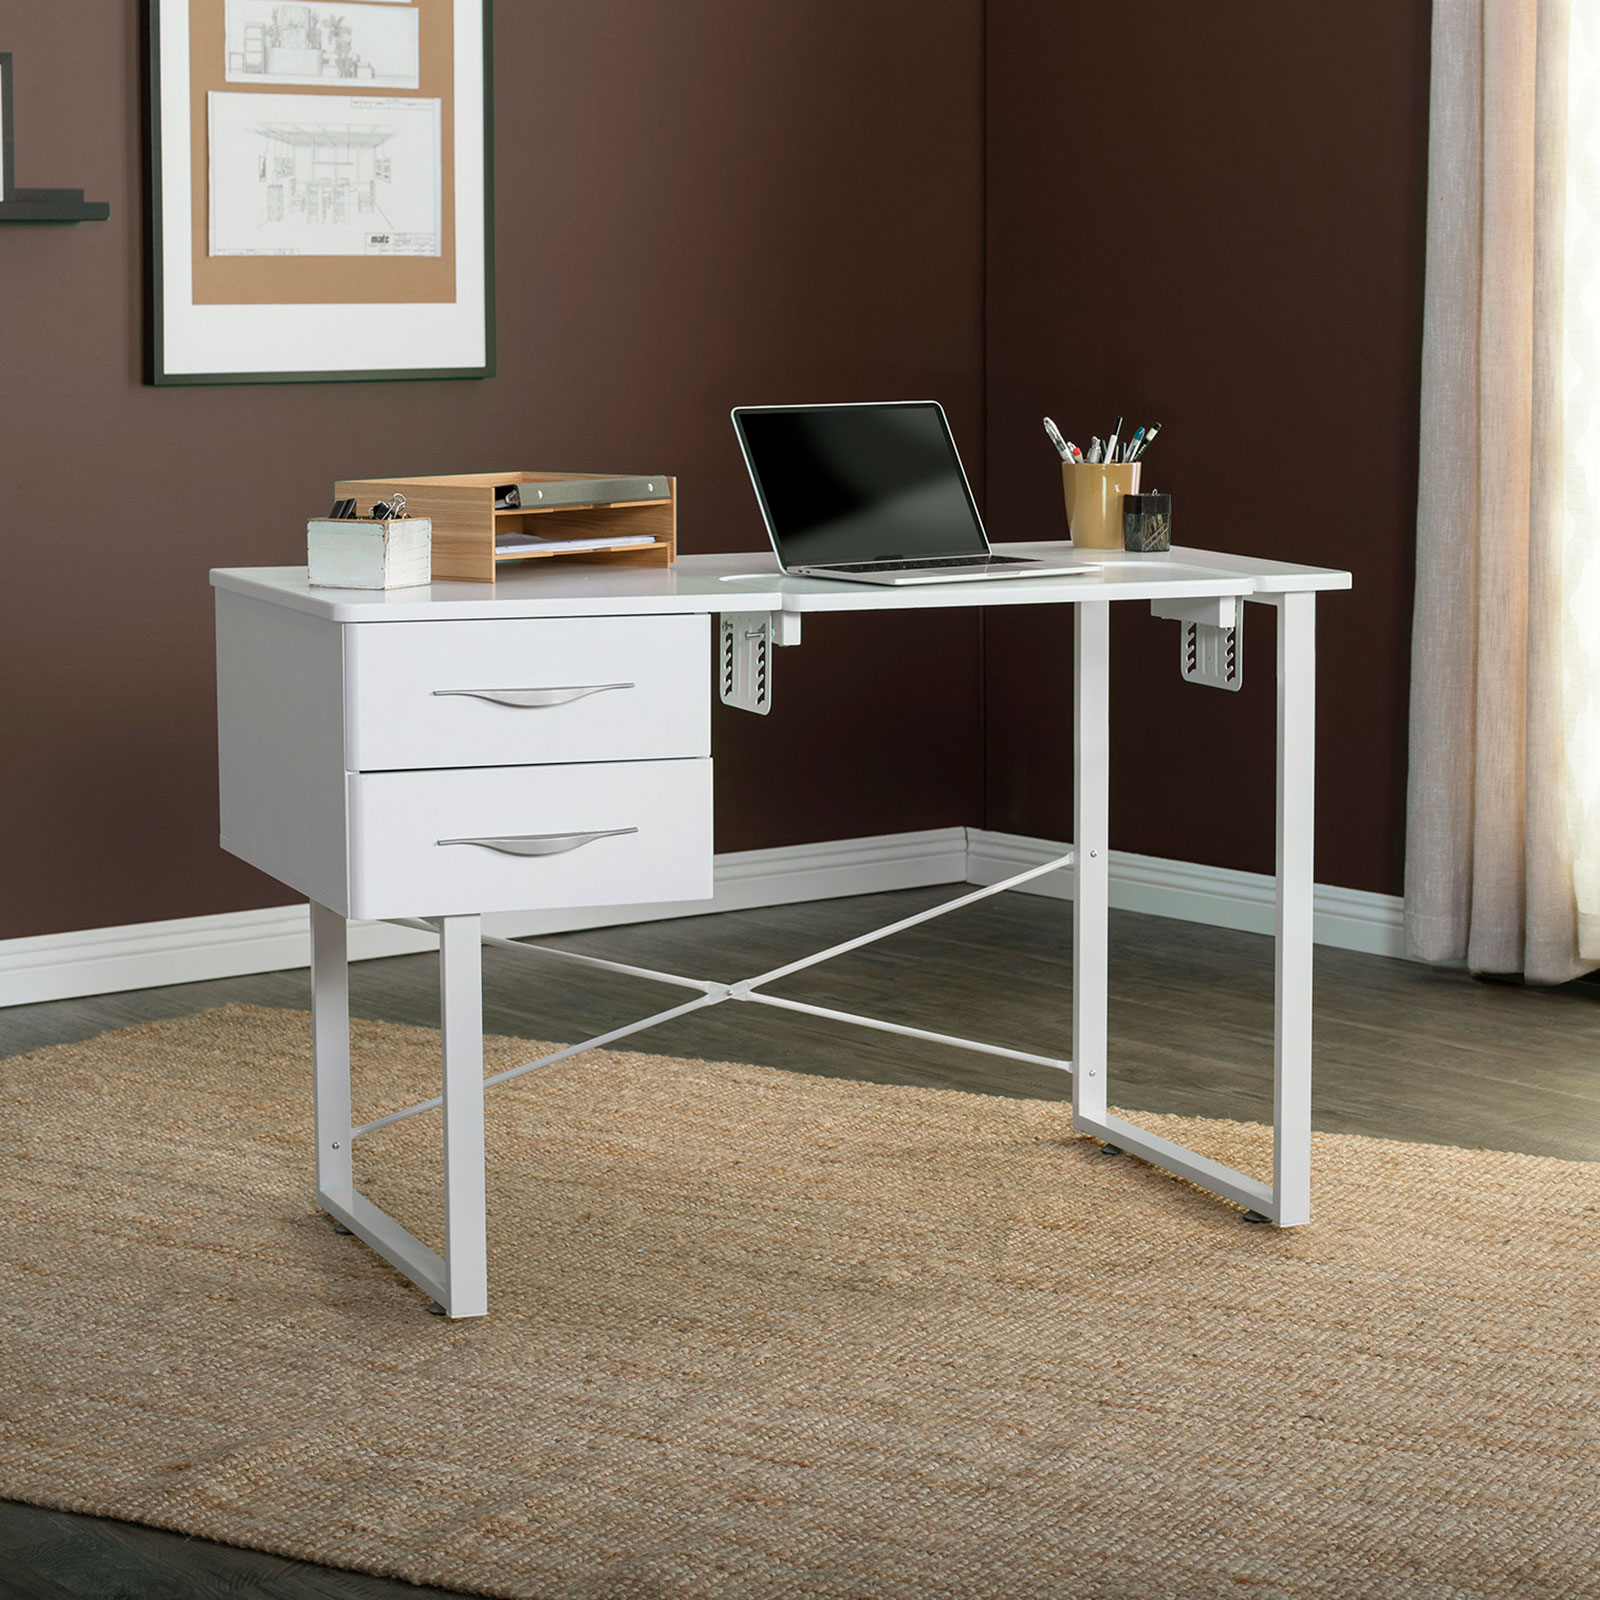 13398-Pro-Line-Sewing-Table-RS2c-ext